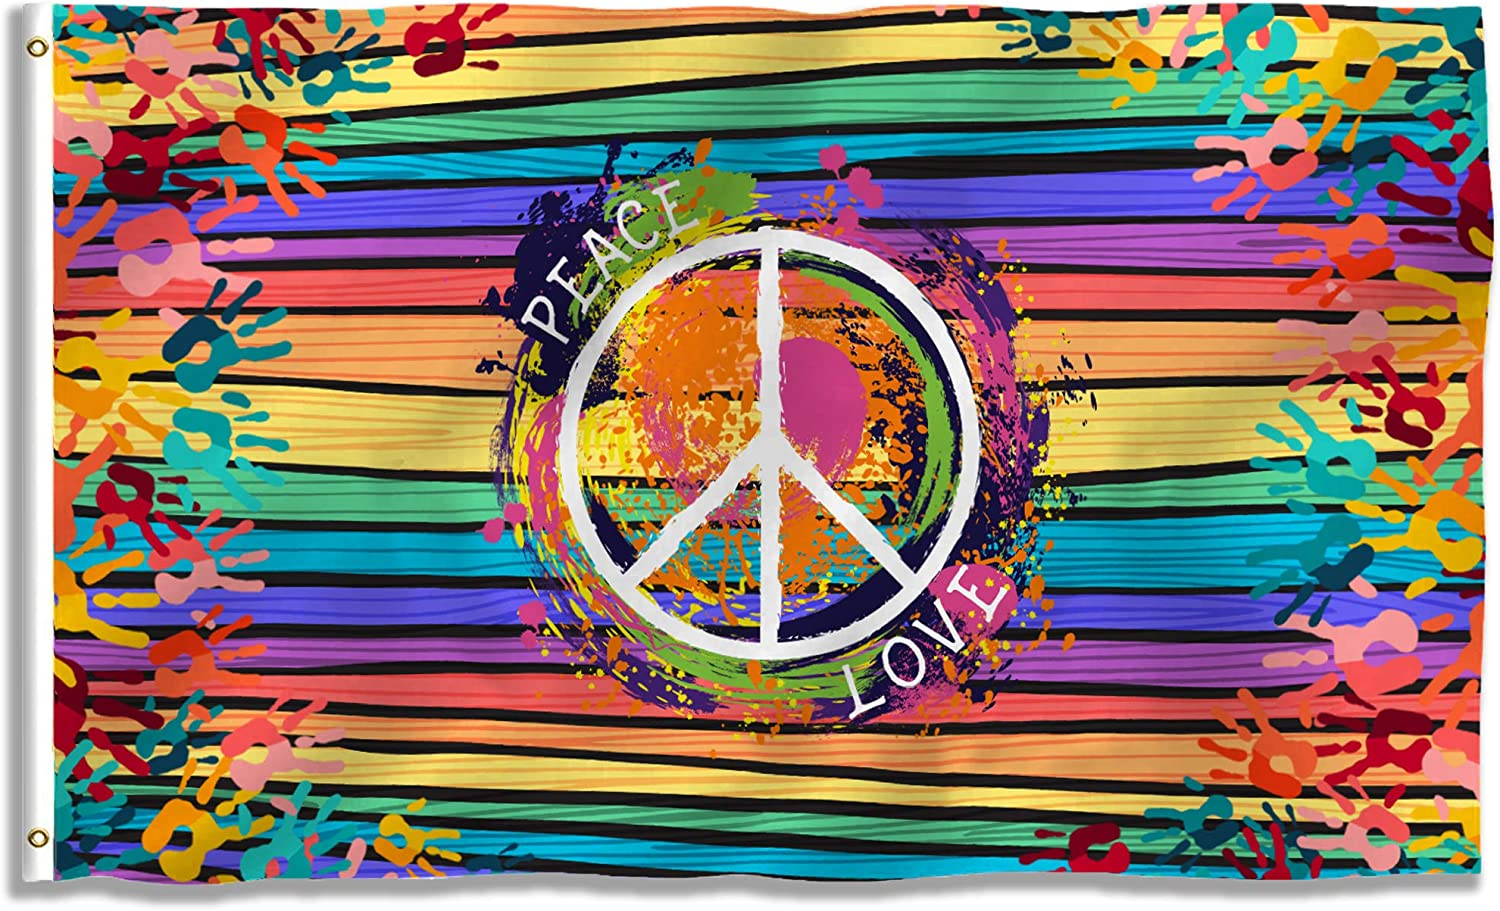 Fancymall Peace Love Sign Decorative Flag 3x5 Ft Vivid Color Double Stitched Polyester Peace World Earth Flag with Brass Grommets for Indoor Outdoor Garden Décor